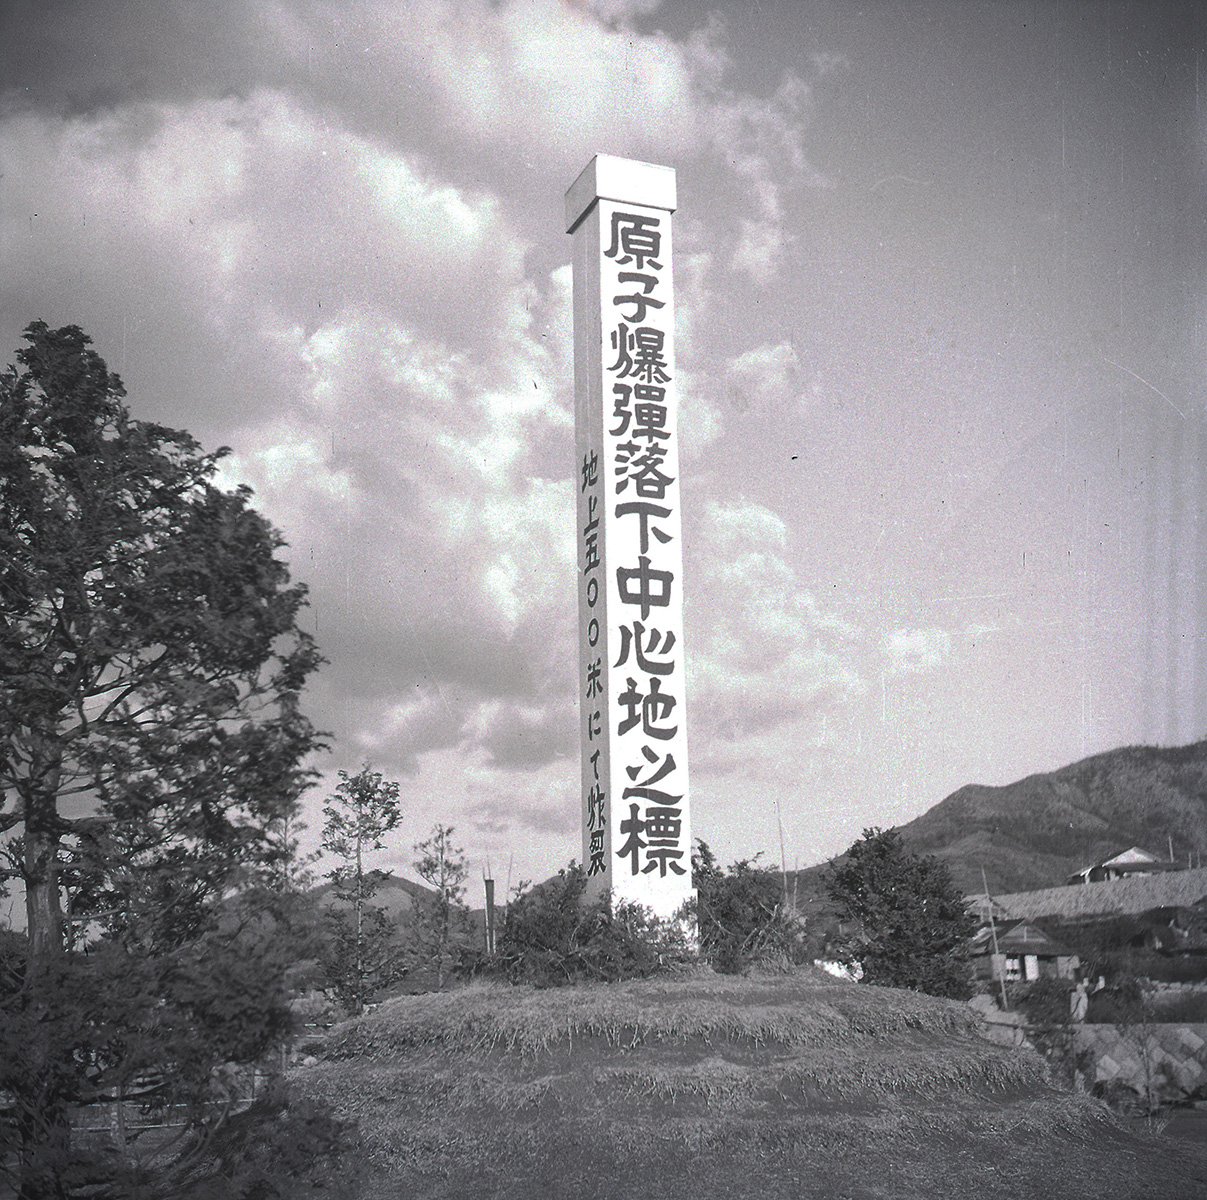 The signpost of the hypocenter